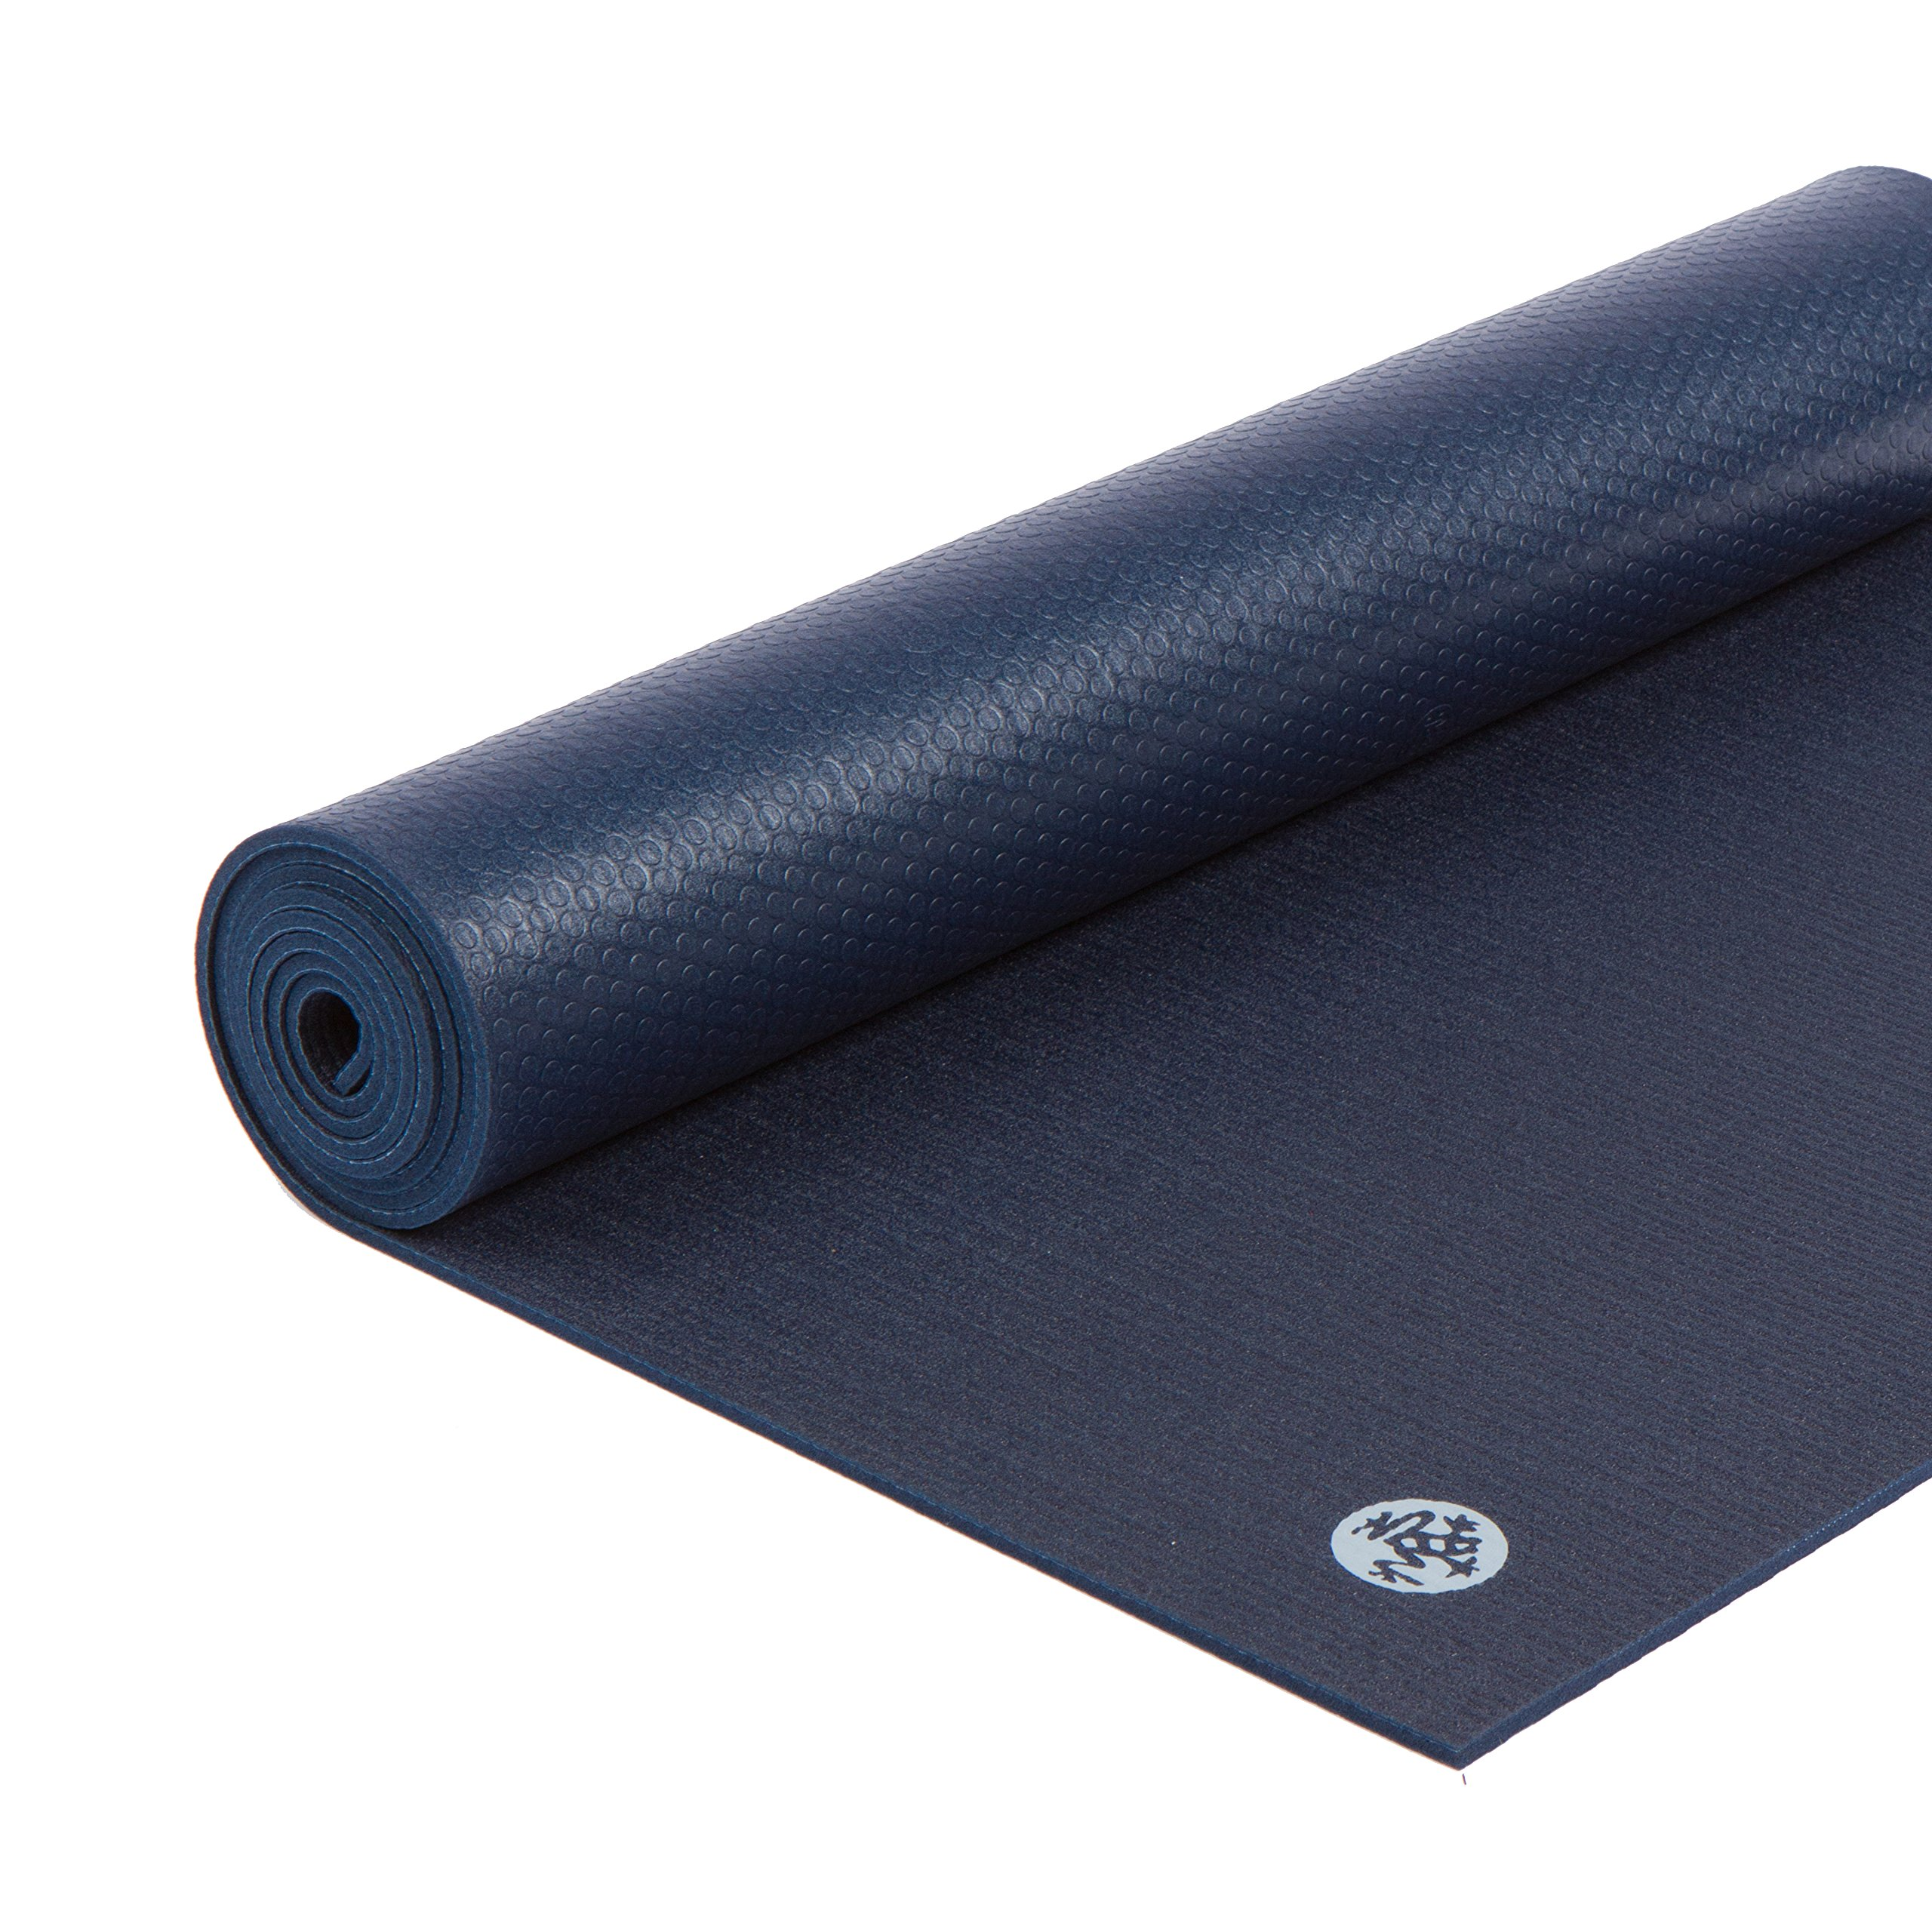 Communication on this topic: This Genius Exercise Mat Rolls Itself Up , this-genius-exercise-mat-rolls-itself-up/